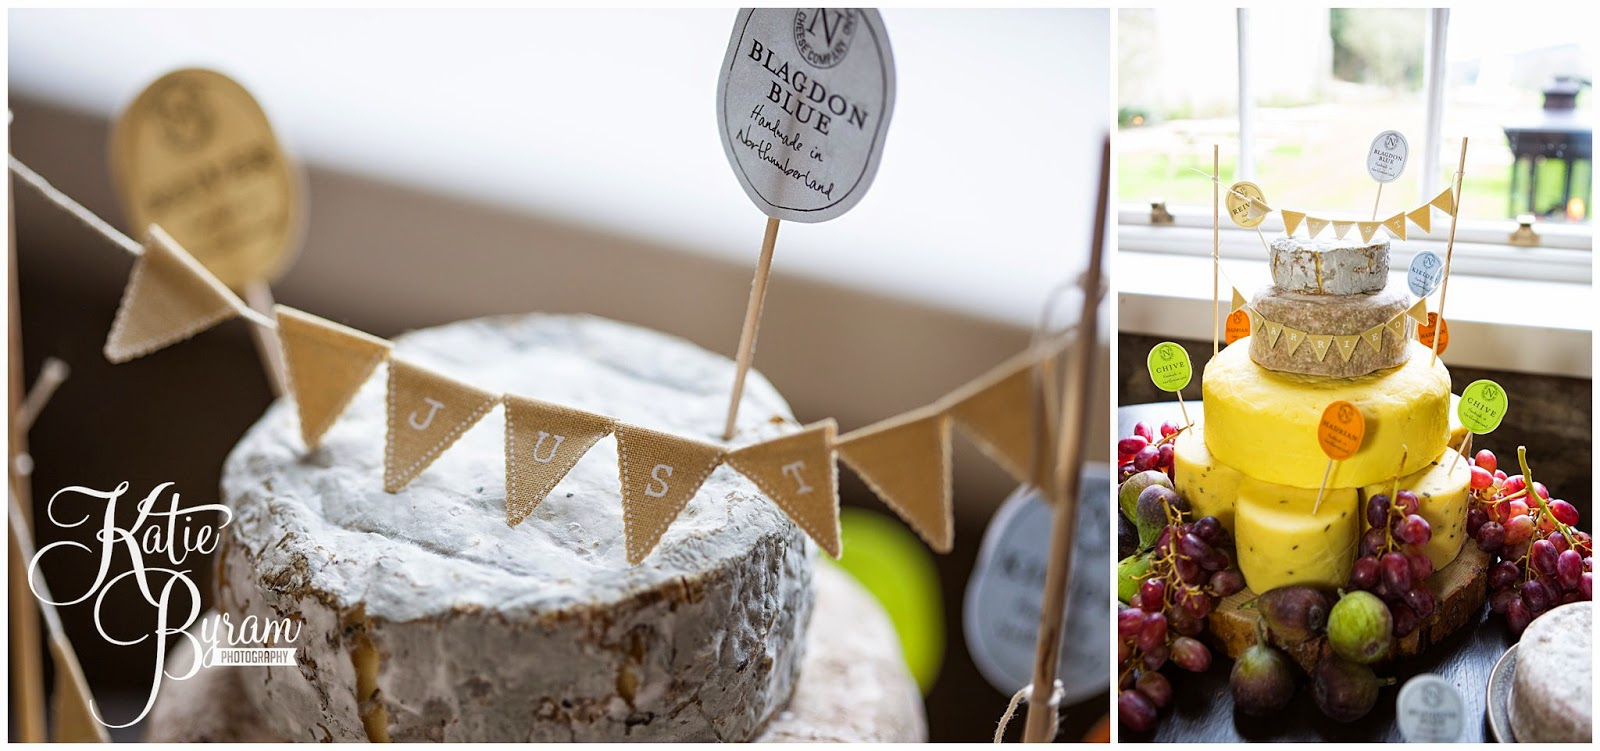 cheese wedding cake, northumberland cheese wedding cake, minsteracres wedding, lord crewe arms wedding, dog at wedding, scoops and smiles, katie byram photography, ice cream van hire newcastle, newcastle wedding photography, relaxed wedding photography, quirky, 50